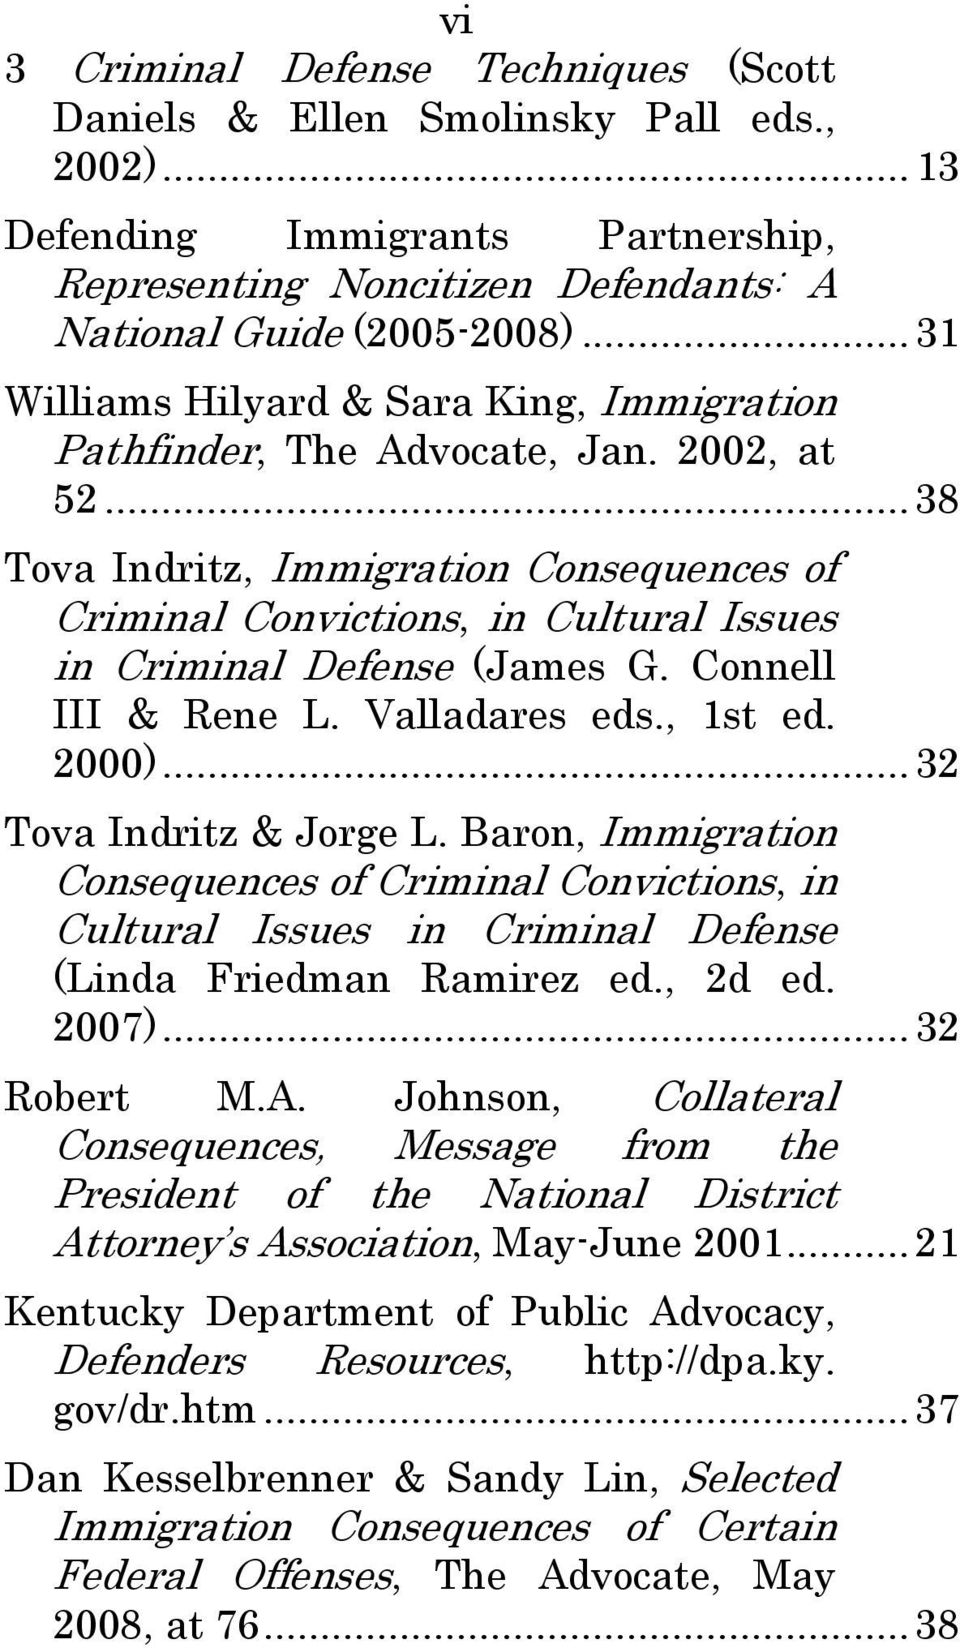 .. 38 Tova Indritz, Immigration Consequences of Criminal Convictions, in Cultural Issues in Criminal Defense (James G. Connell III & Rene L. Valladares eds., 1st ed. 2000)...32 Tova Indritz & Jorge L.